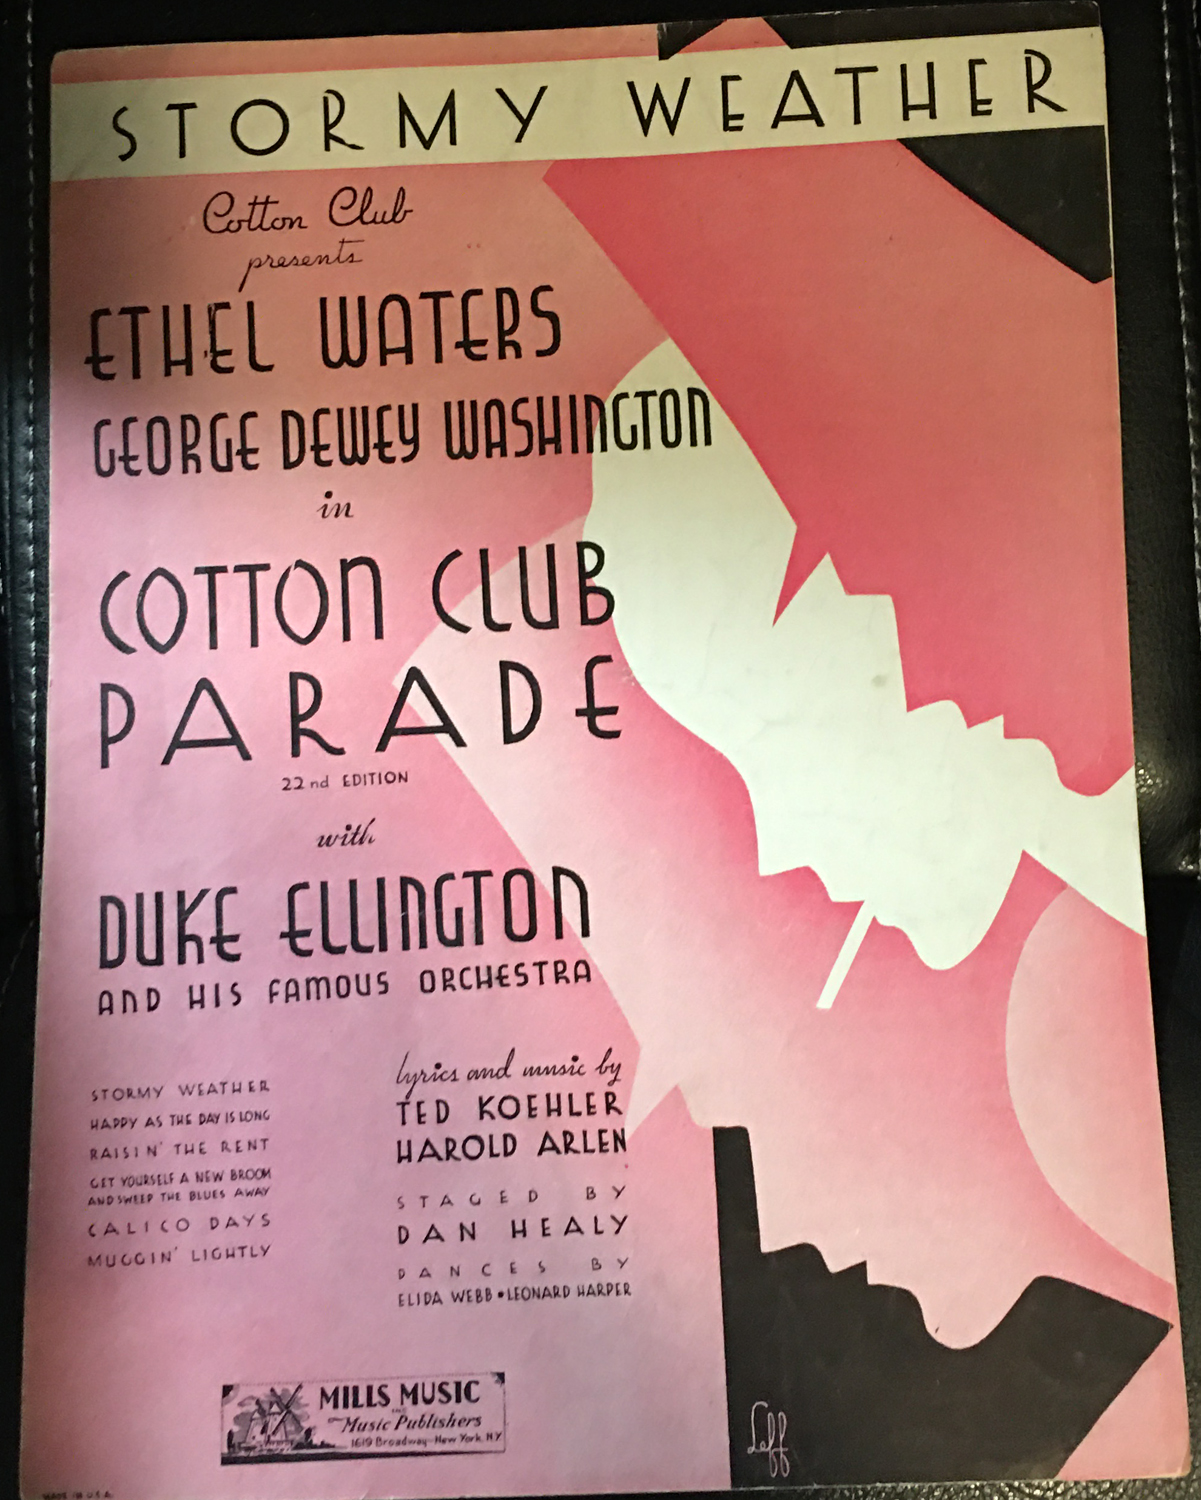 Image for Stormy Weather Cotton Club Presents Ethel Waters and George Dewey Washington in Cotton Club Parade